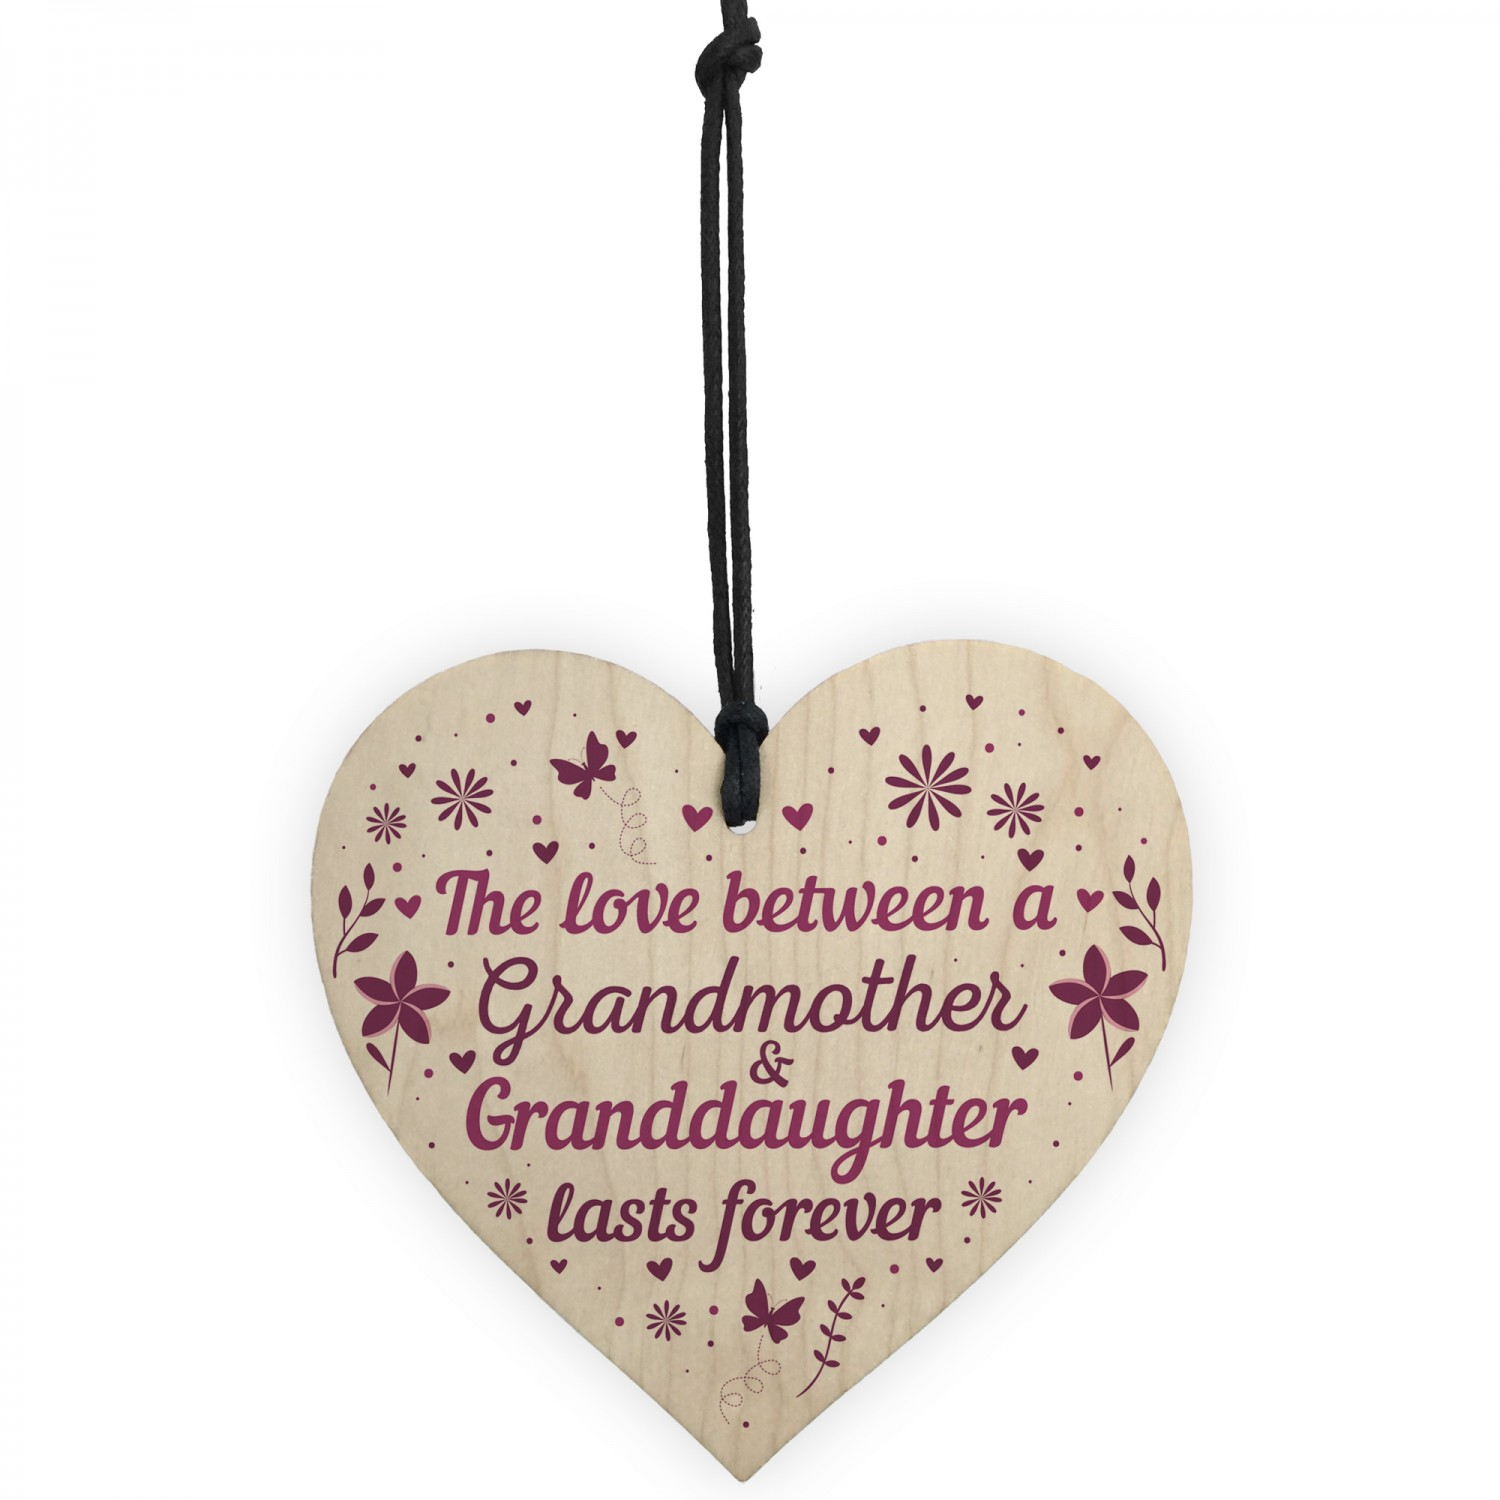 Grandmother And Granddaughter Gifts Nan Grandma Birthday Heart